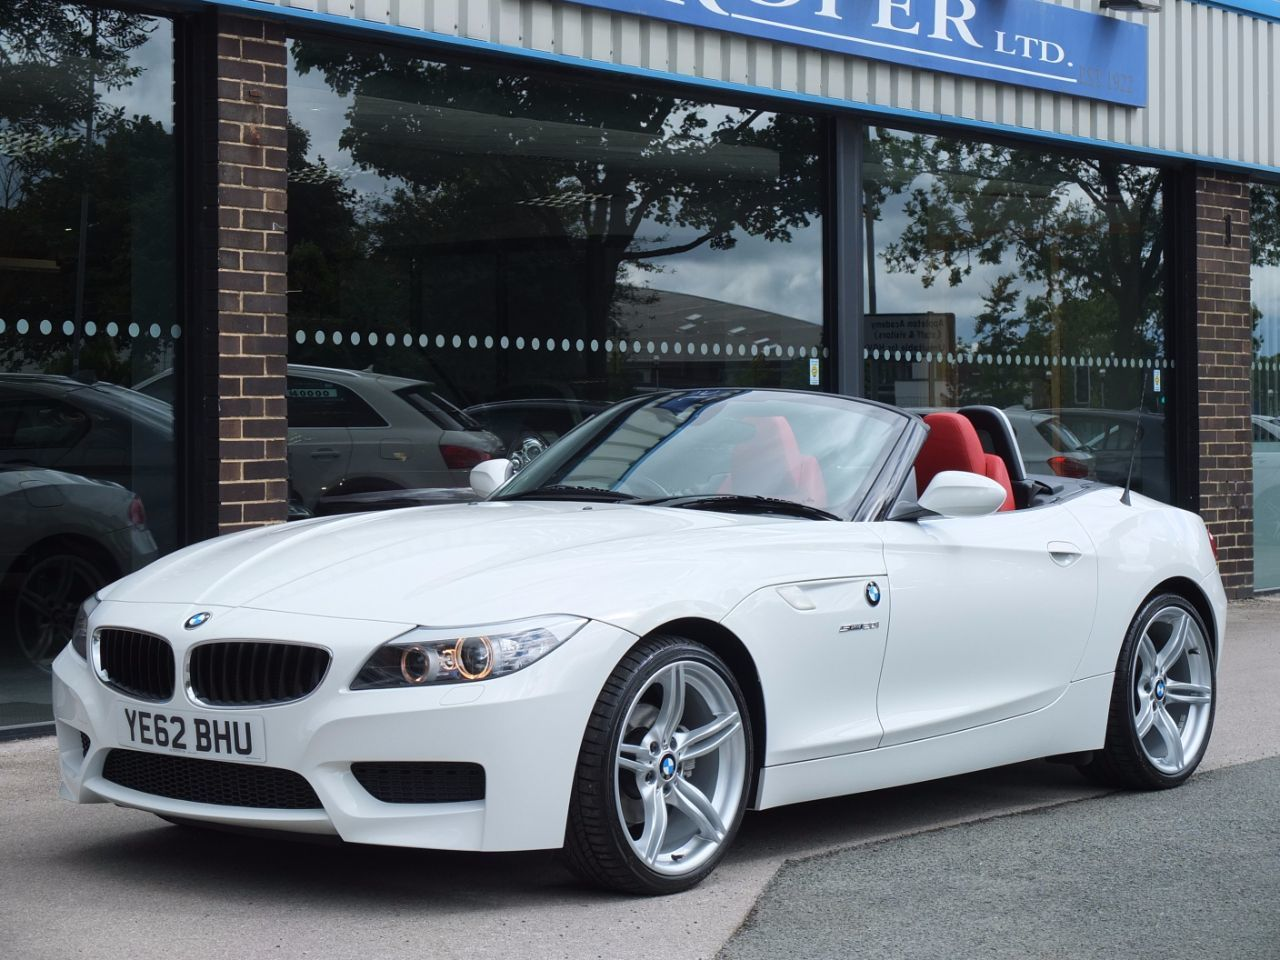 second hand bmw z4 20i sdrive m sport automatic for sale in bradford west yorkshire fa roper ltd. Black Bedroom Furniture Sets. Home Design Ideas